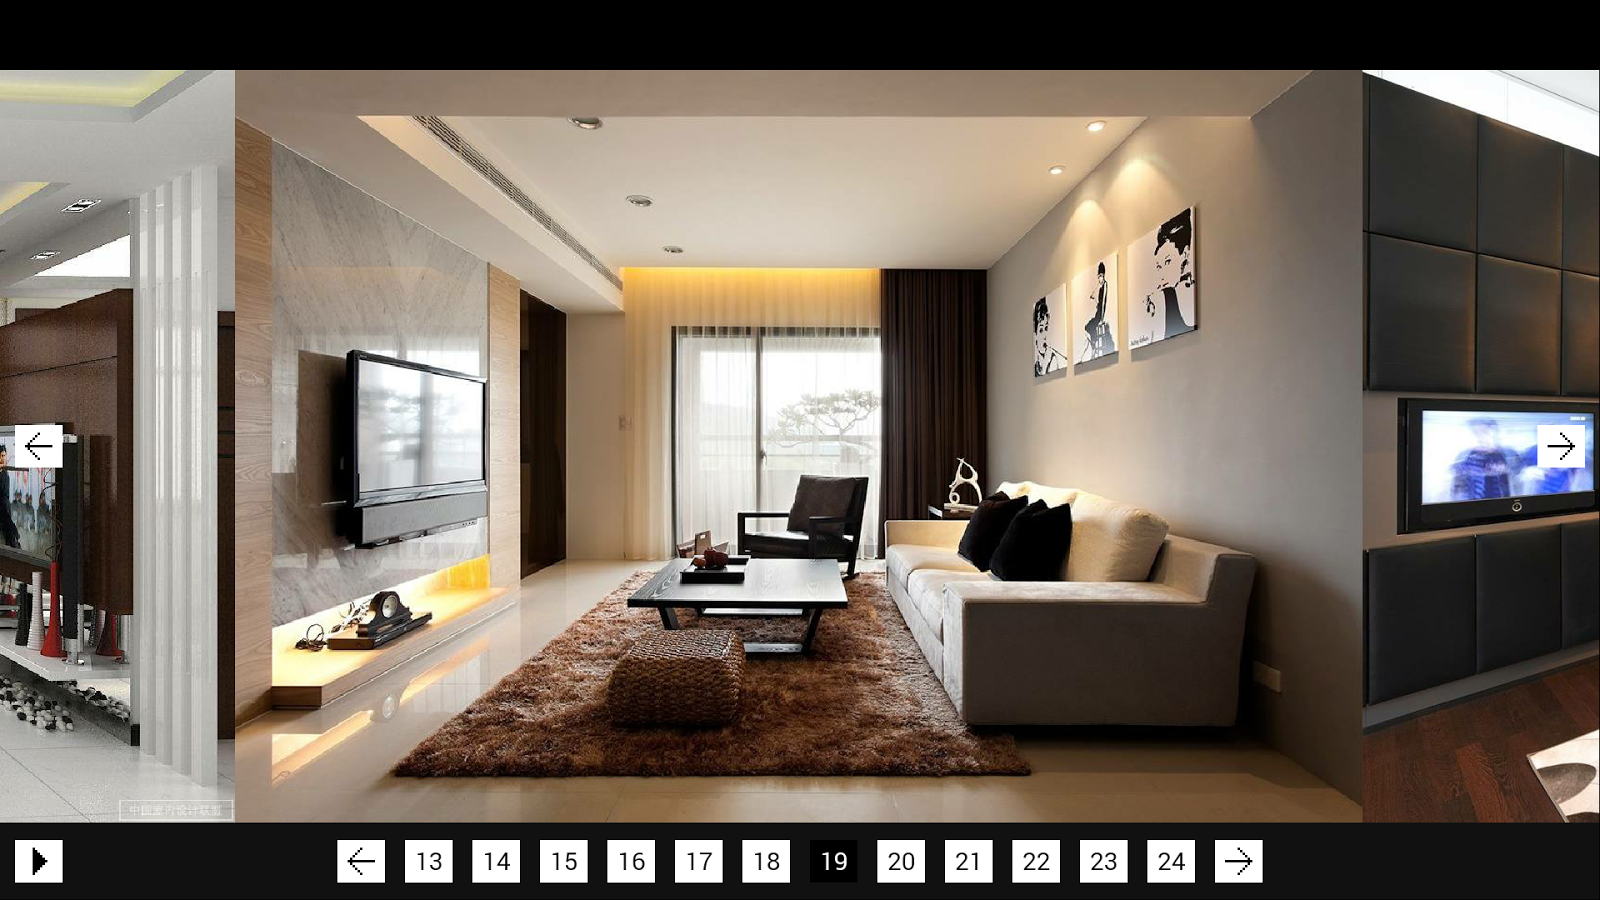 Home interior design android apps on google play - Decorate a house online ...